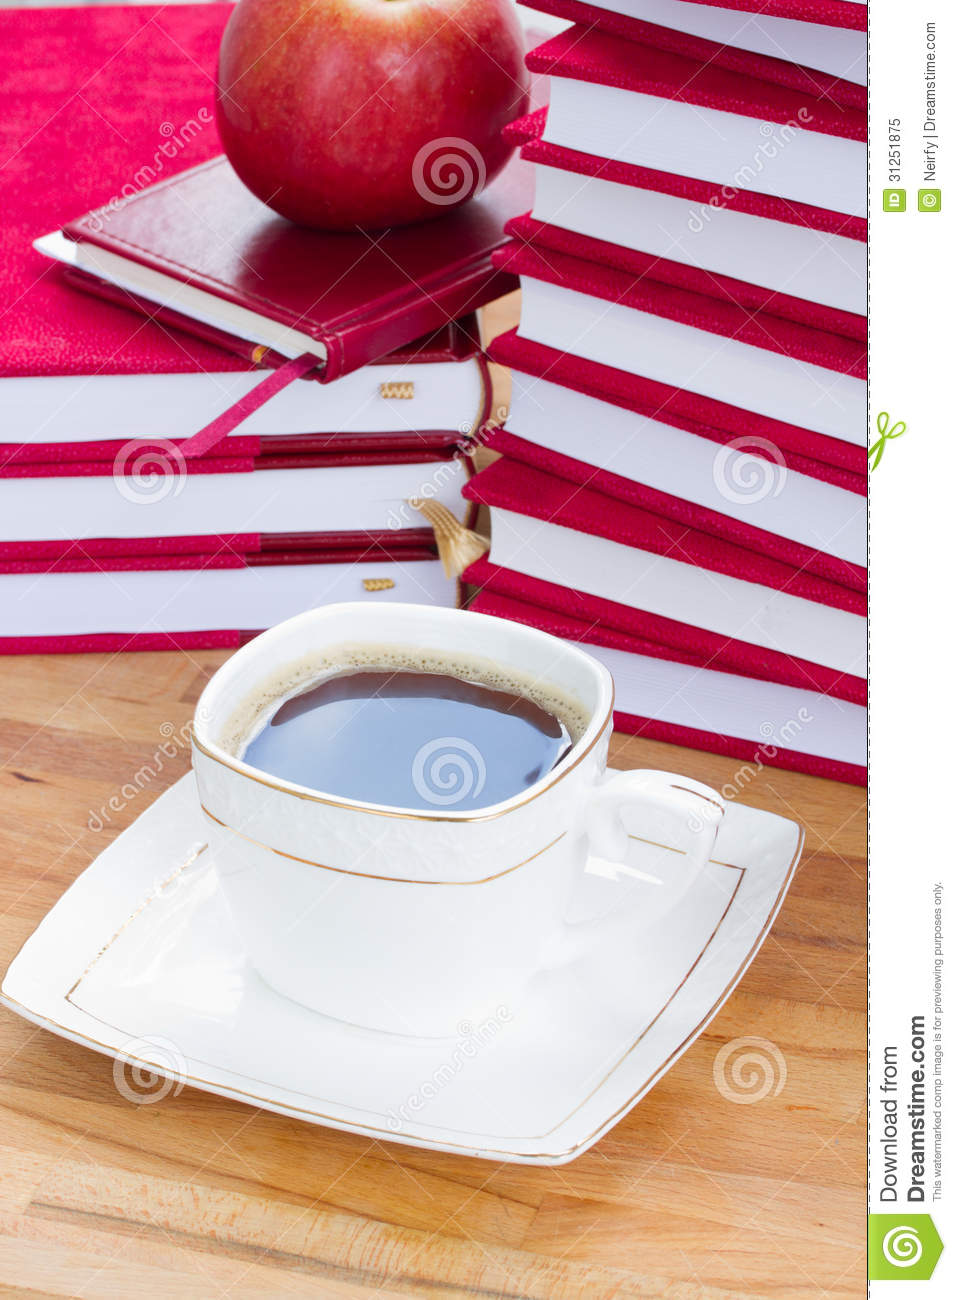 Cup of black coffee on table with books royalty free stock for Apple coffee table book